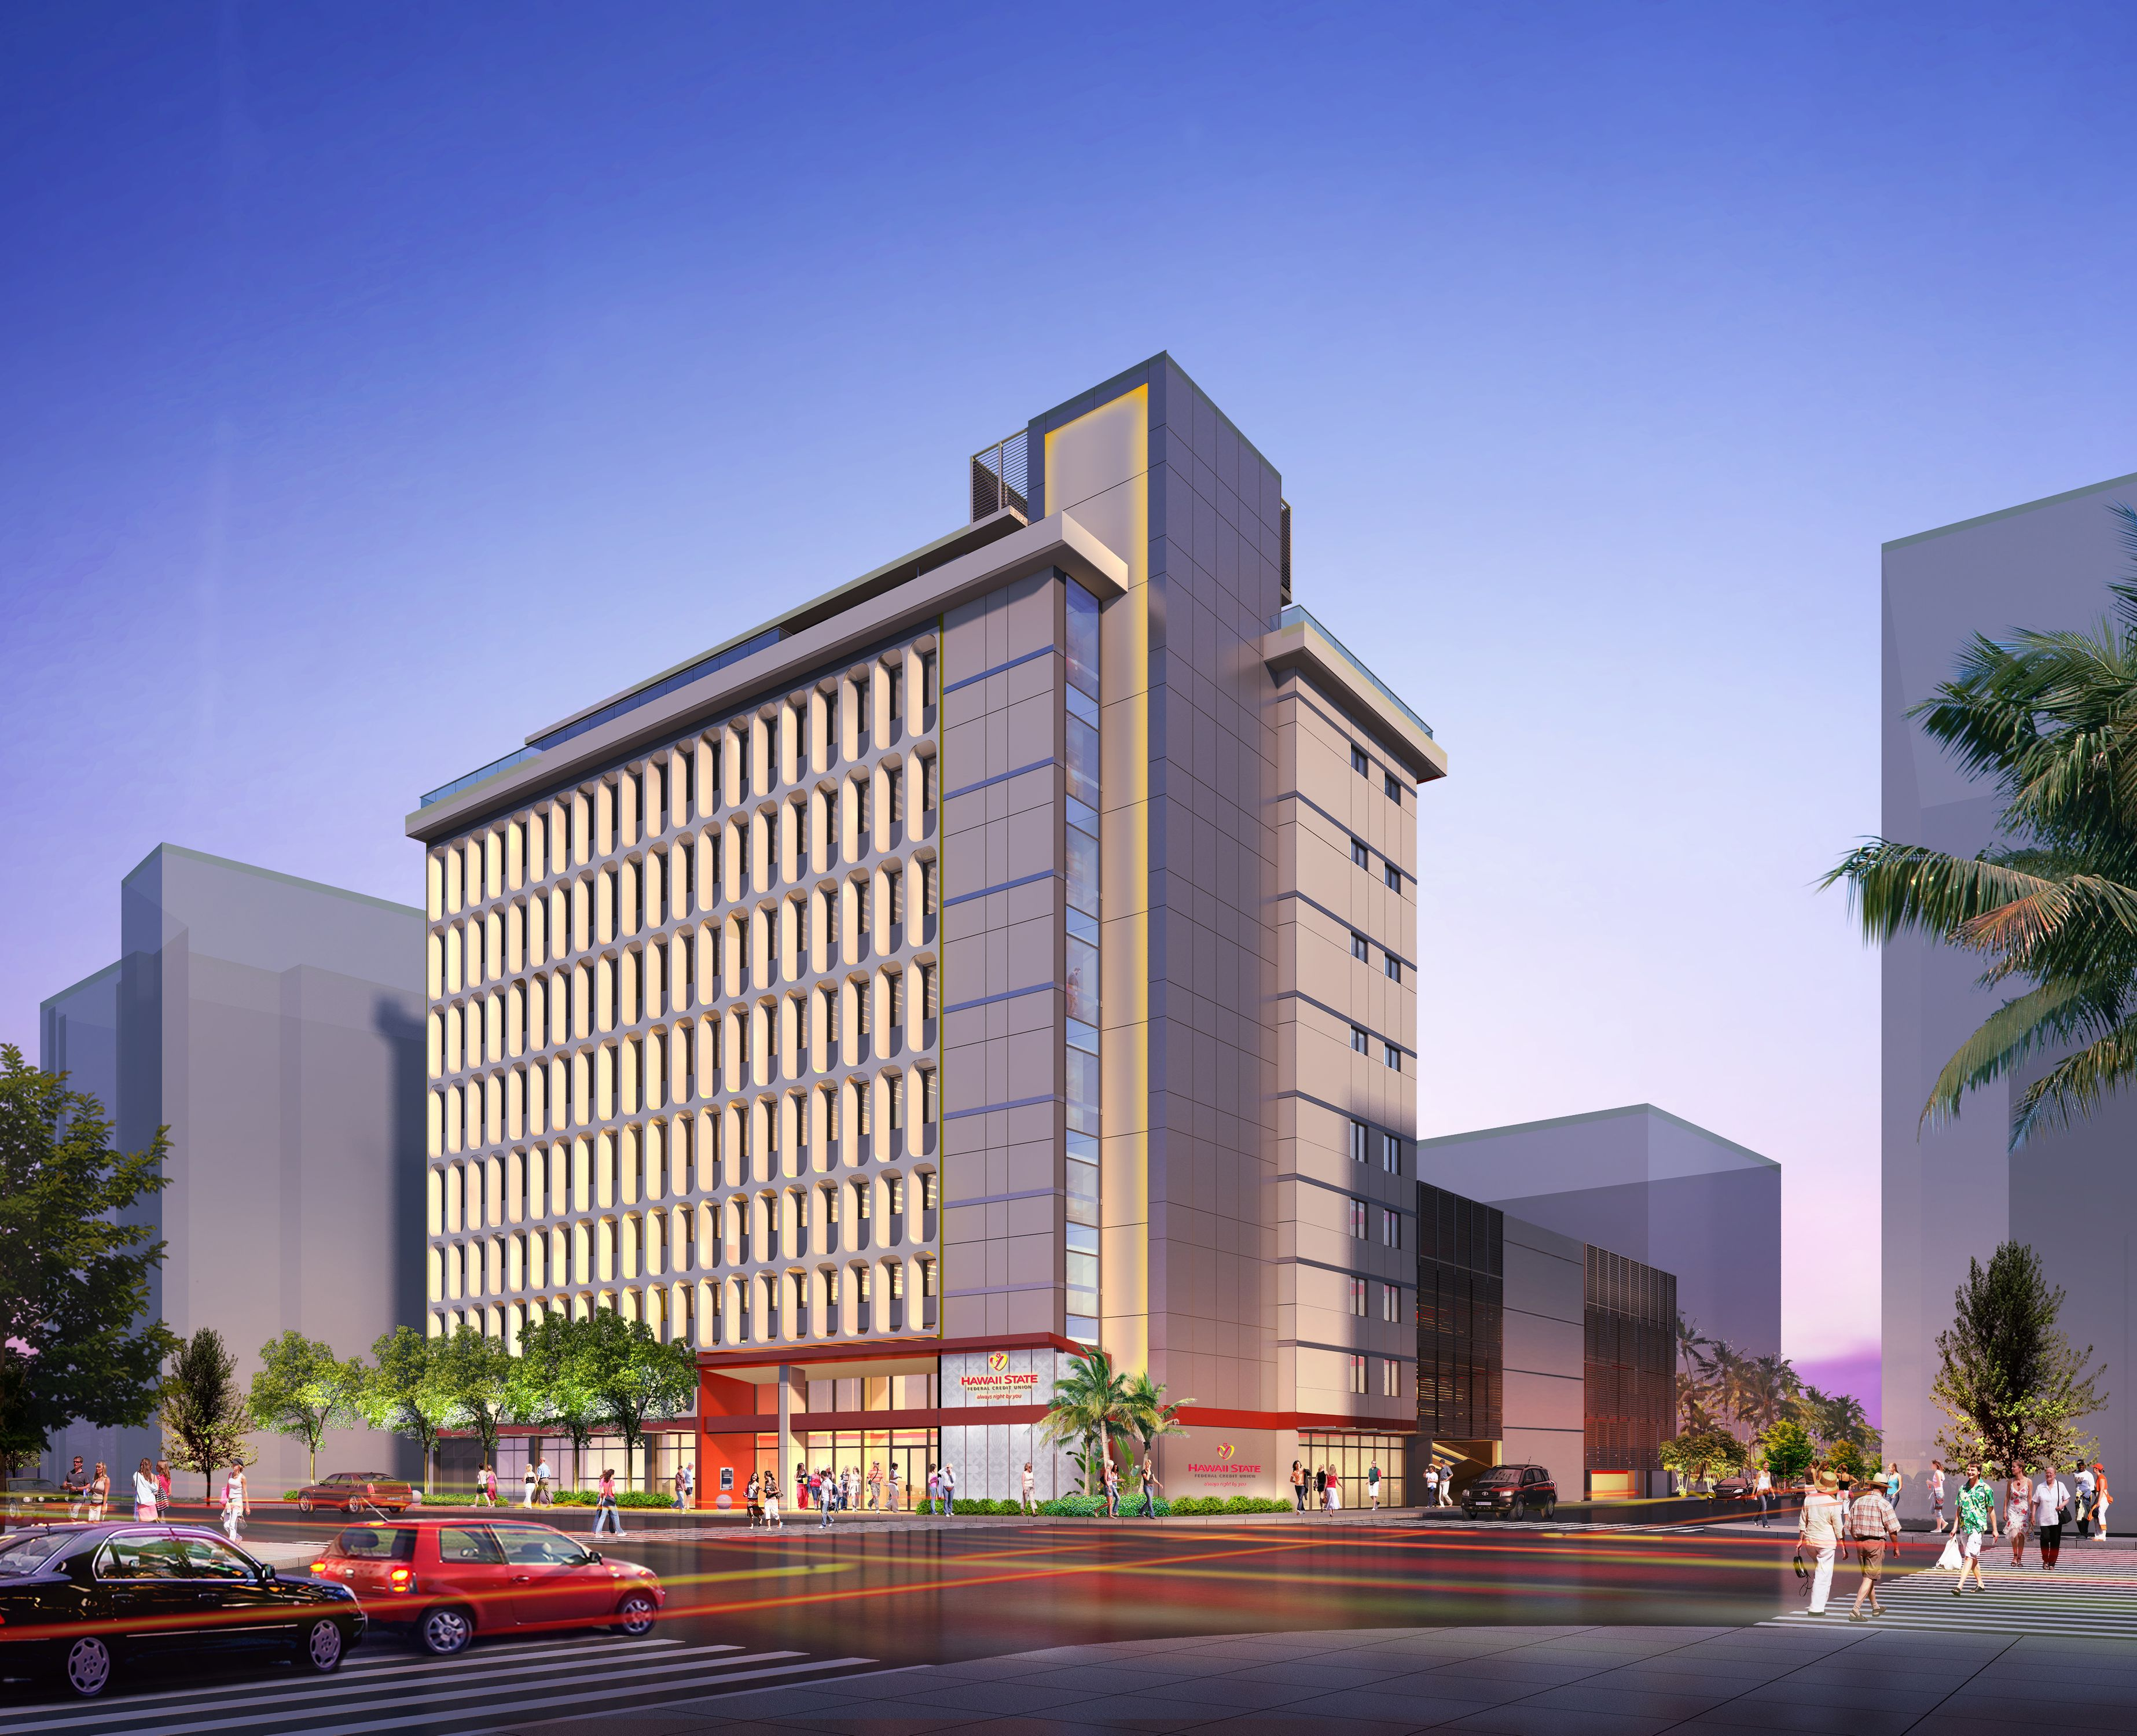 2021-07-14_Revised work for HSFCU project A.jpg